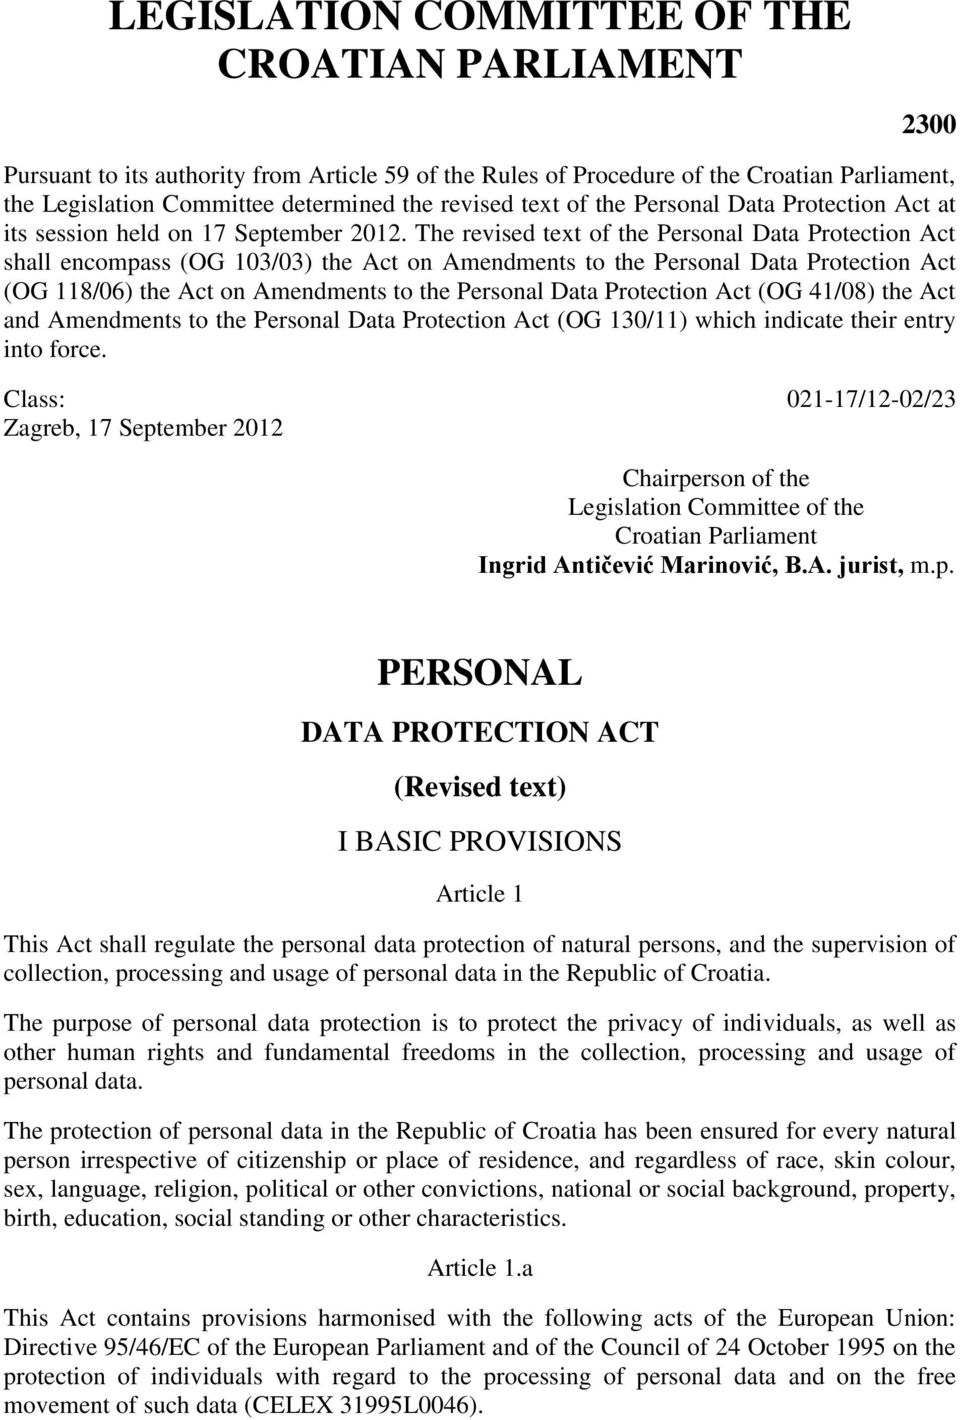 The revised text of the Personal Data Protection Act shall encompass (OG 103/03) the Act on Amendments to the Personal Data Protection Act (OG 118/06) the Act on Amendments to the Personal Data